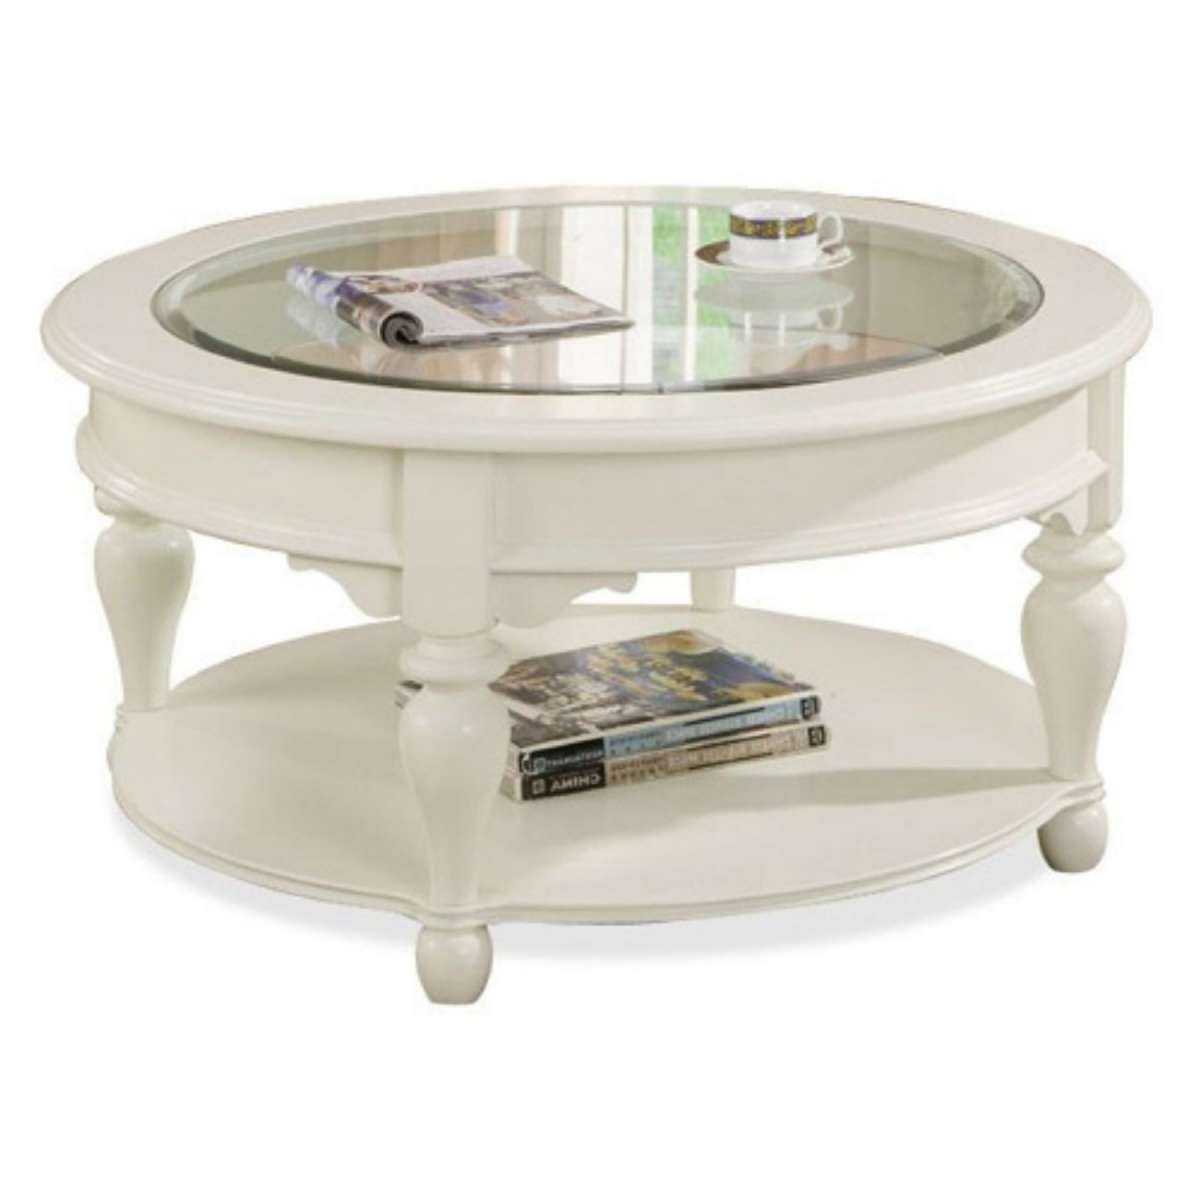 Most Recently Released Round Storage Coffee Tables For The Round Coffee Tables With Storage – The Simple And Compact (View 11 of 20)